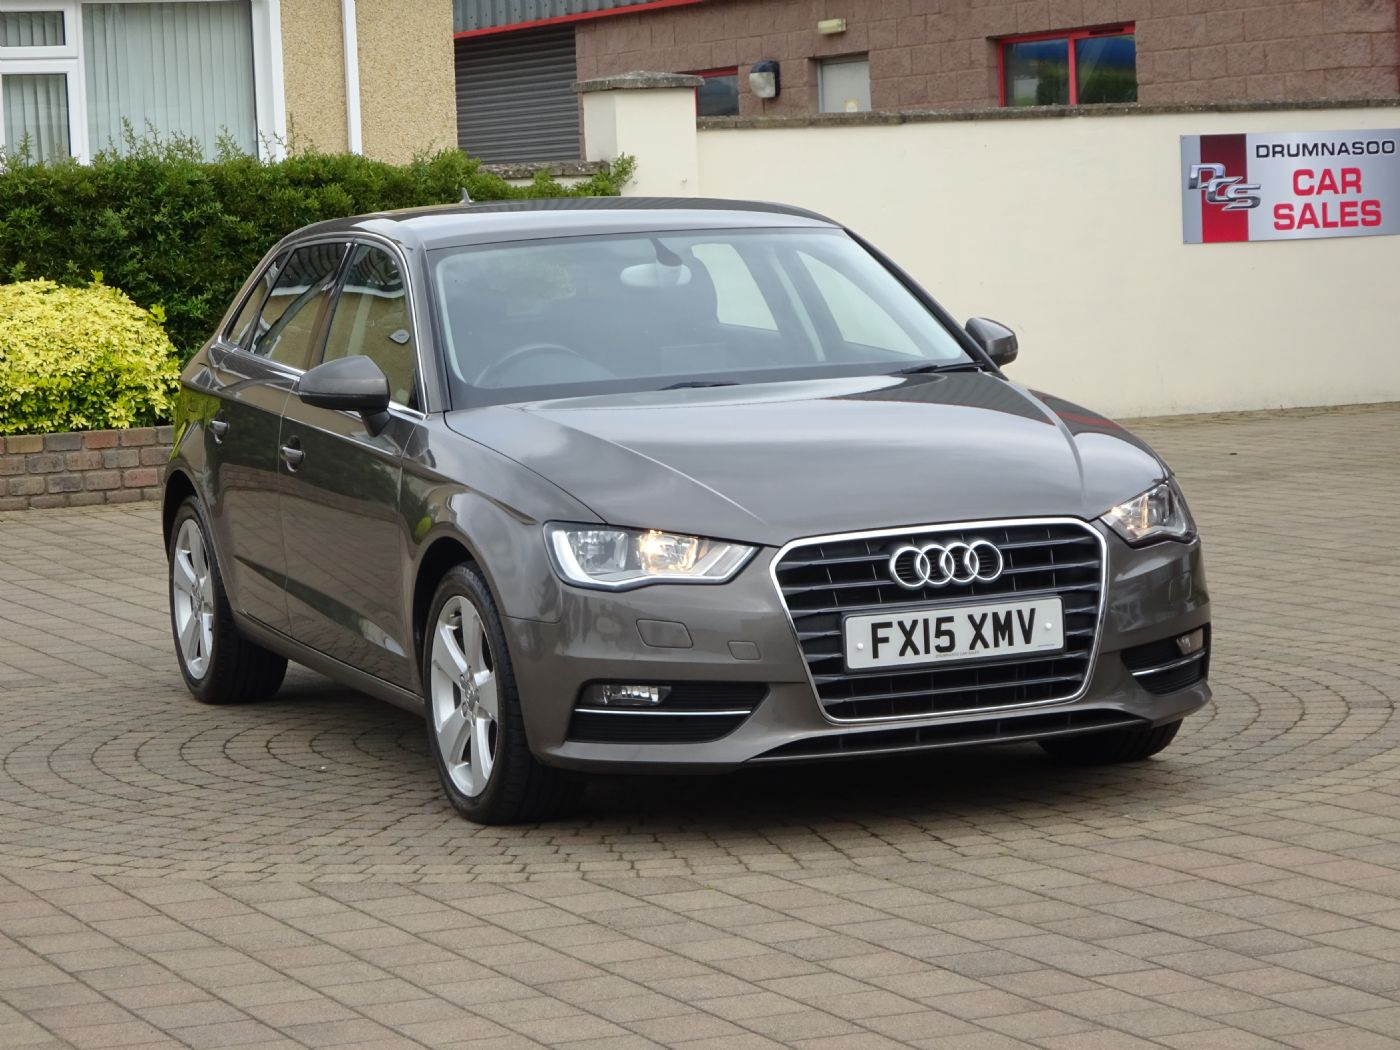 Audi A3 Sport 1.6  TDI 110, Sports seats, Zero road tax